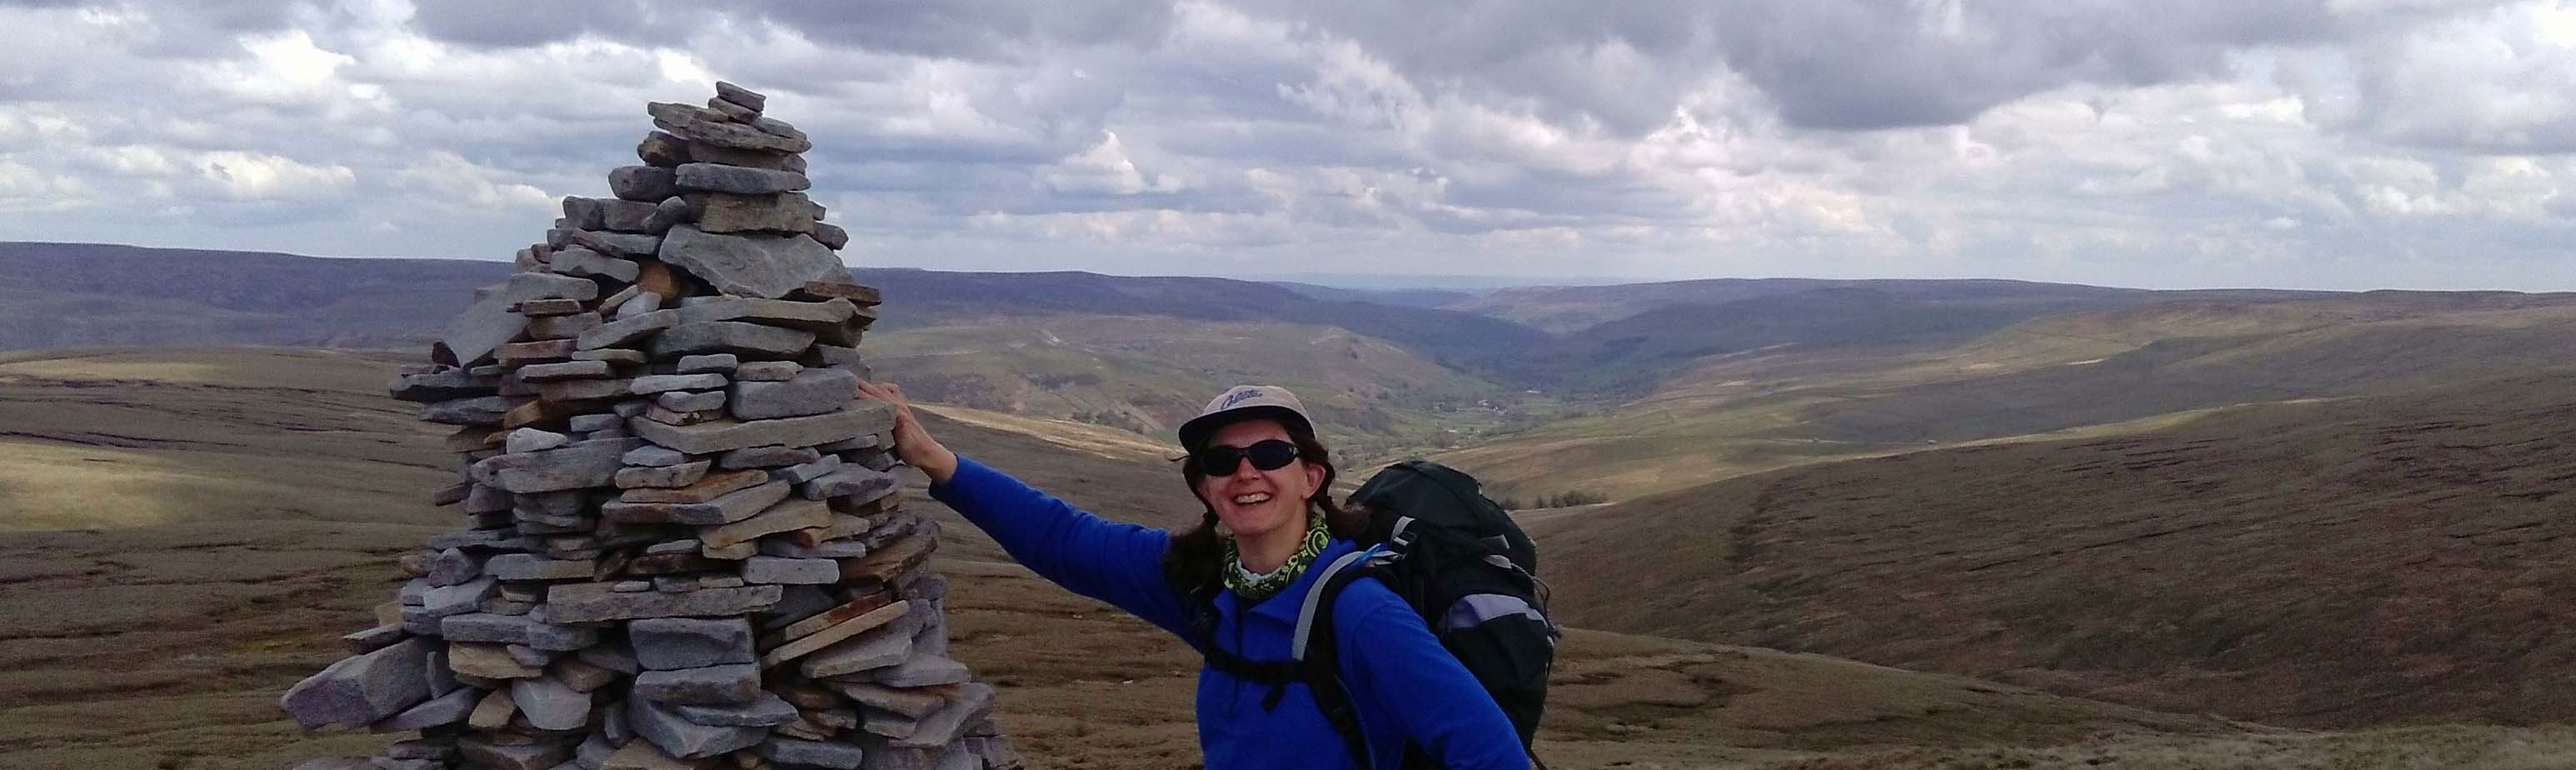 Susan on the Pennine Way in Yorkshire